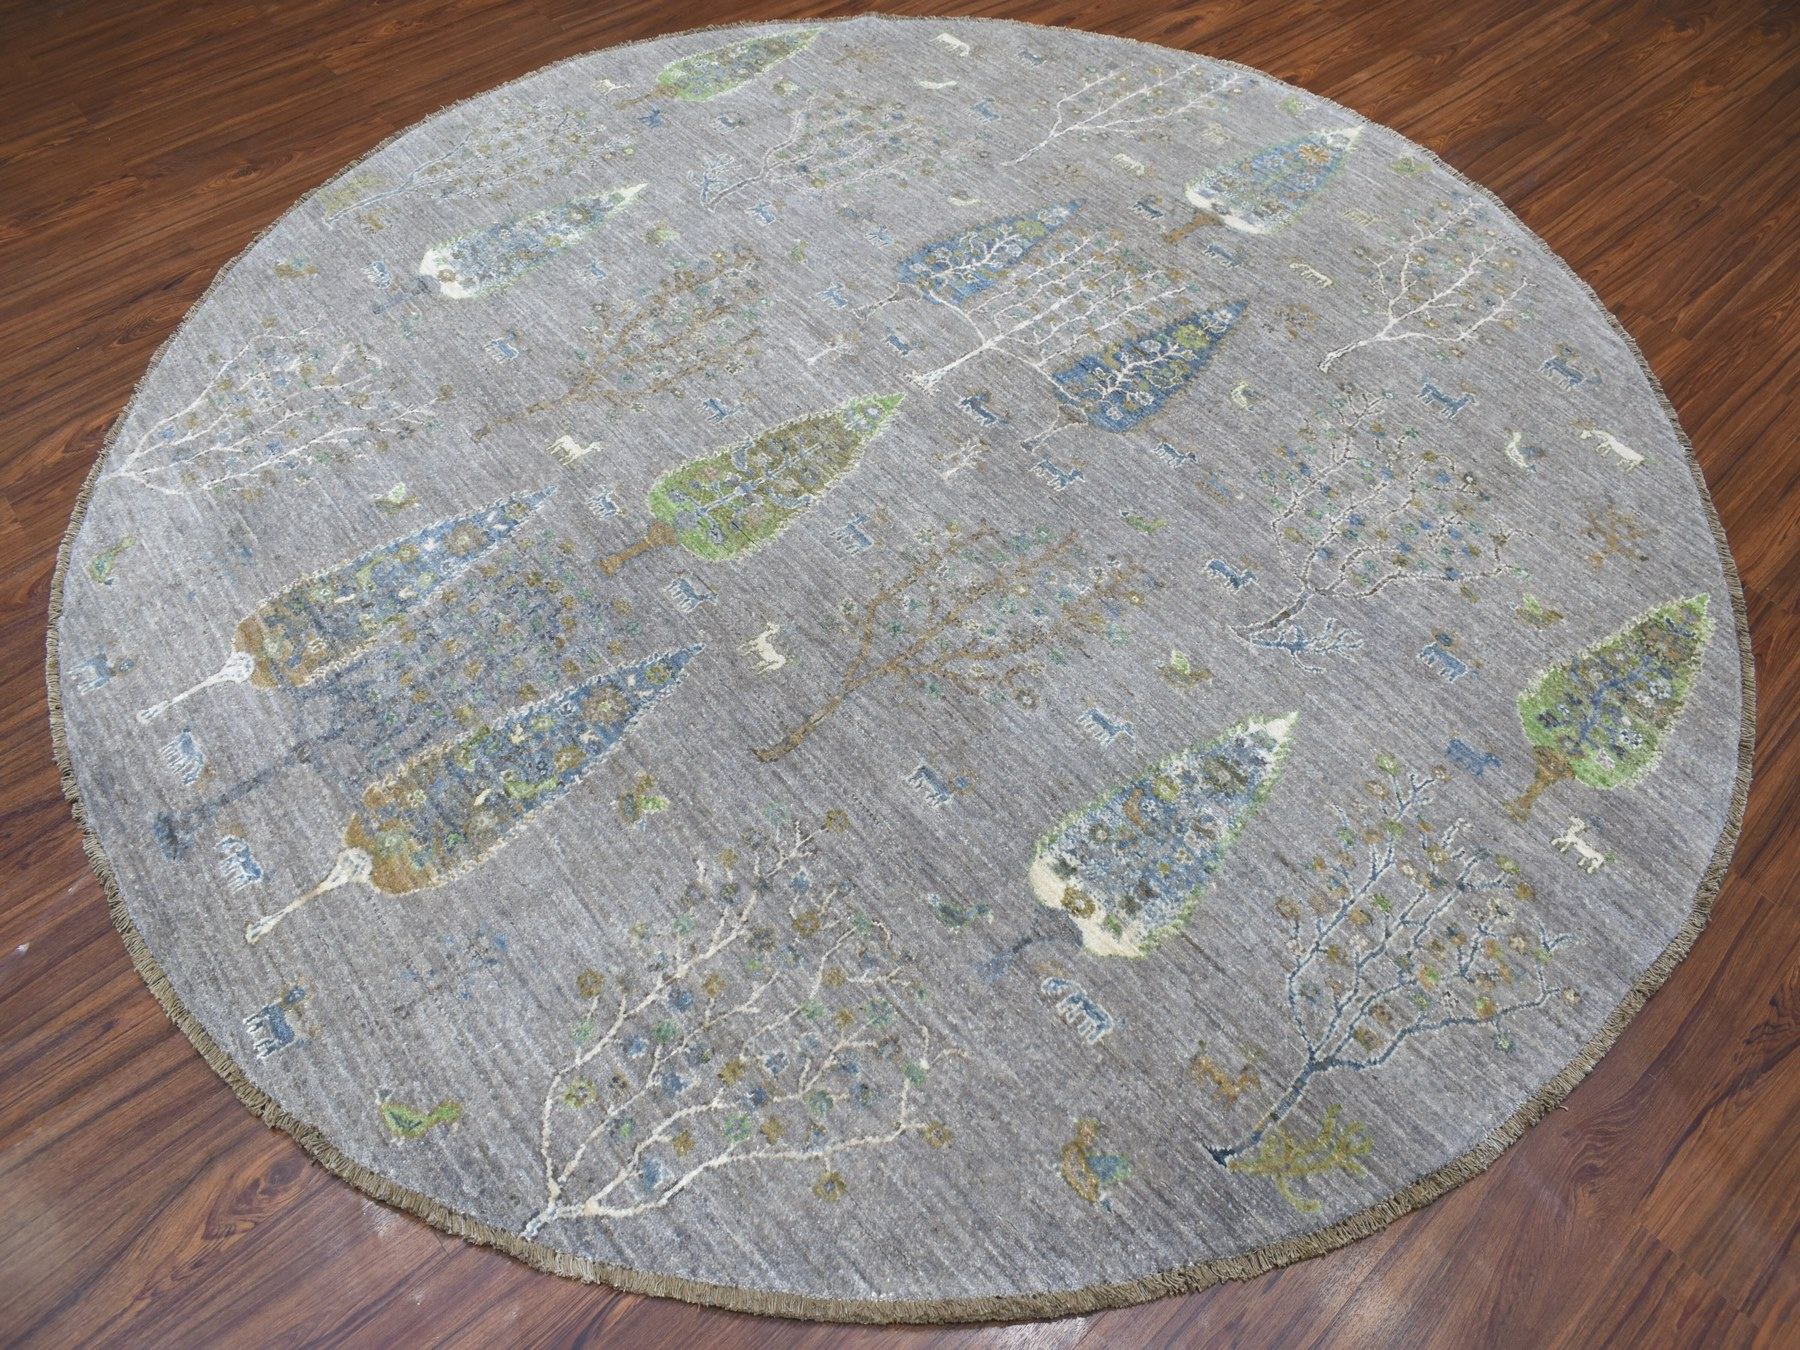 Transitional Wool Hand-Knotted Area Rug 8'2